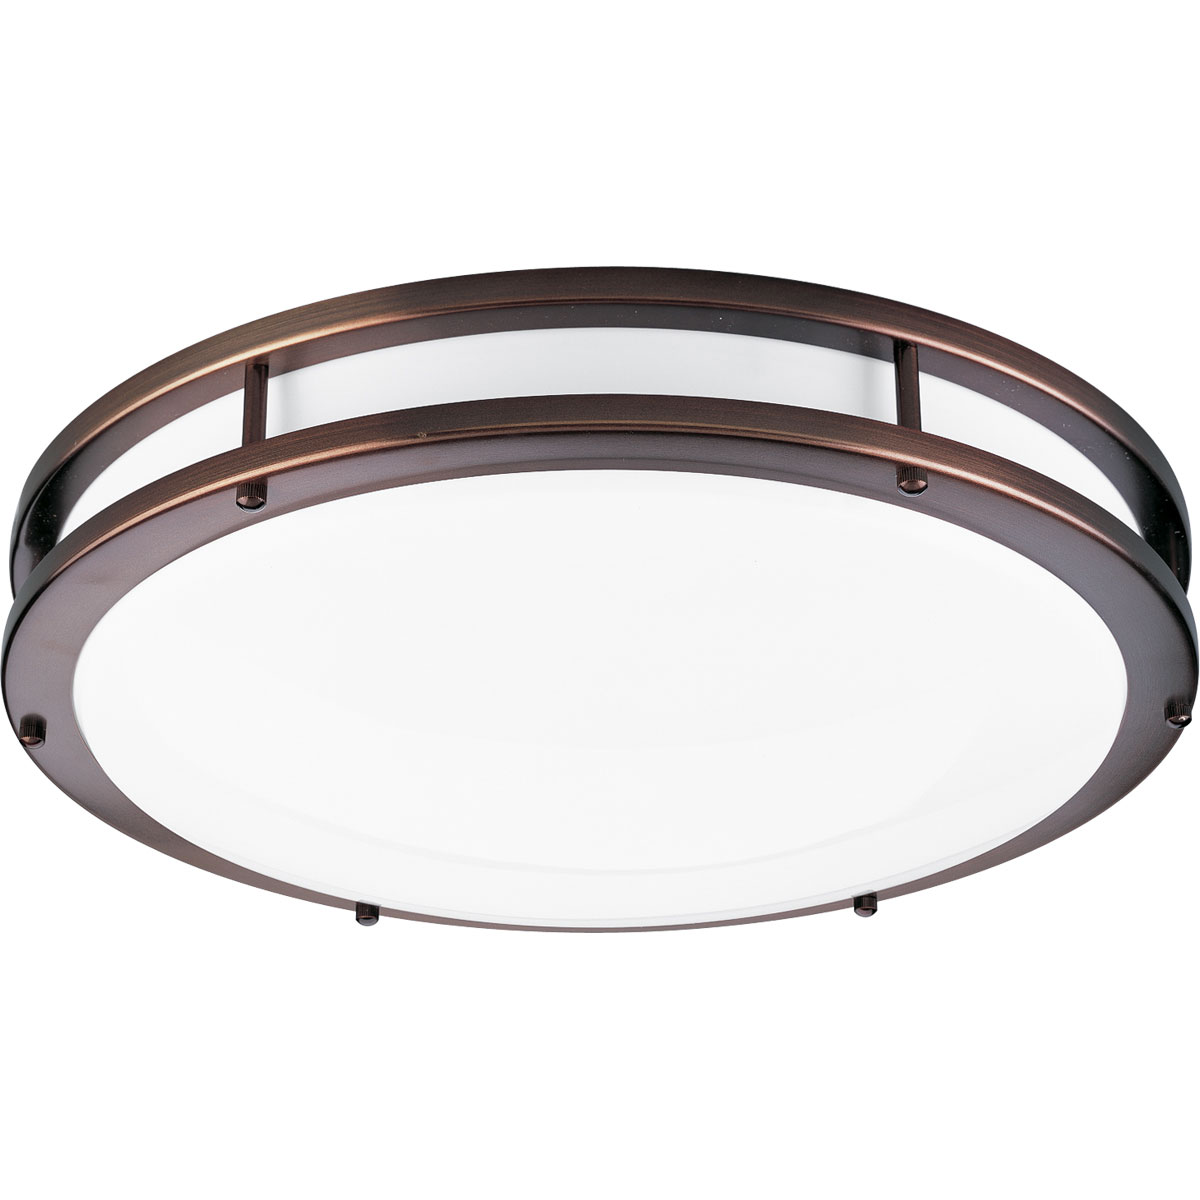 progress lighting p7250 174ebwb 2 light round fluorescent fixture. Black Bedroom Furniture Sets. Home Design Ideas